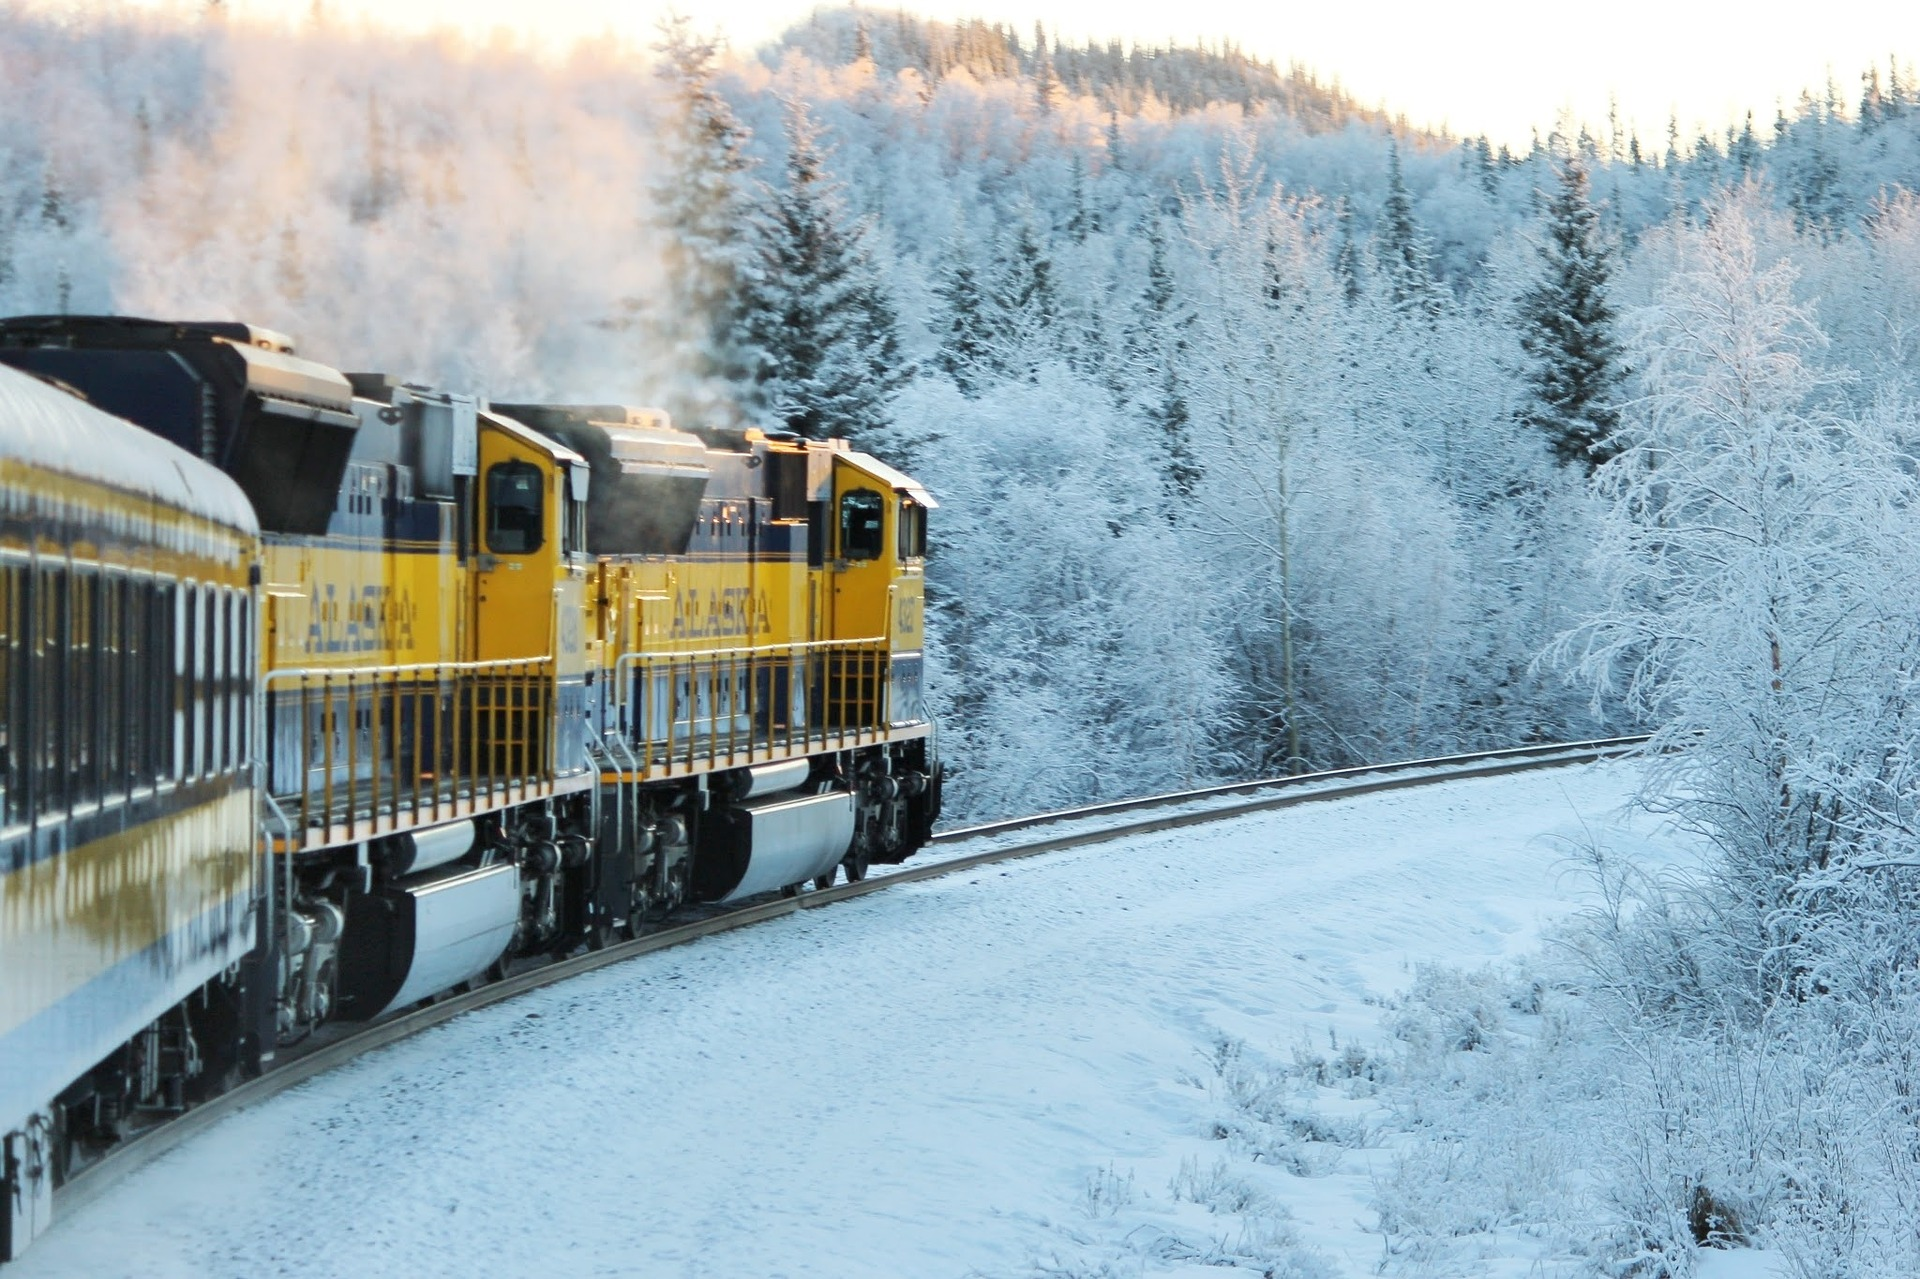 5 best winter train rides that your entire family will enjoy!